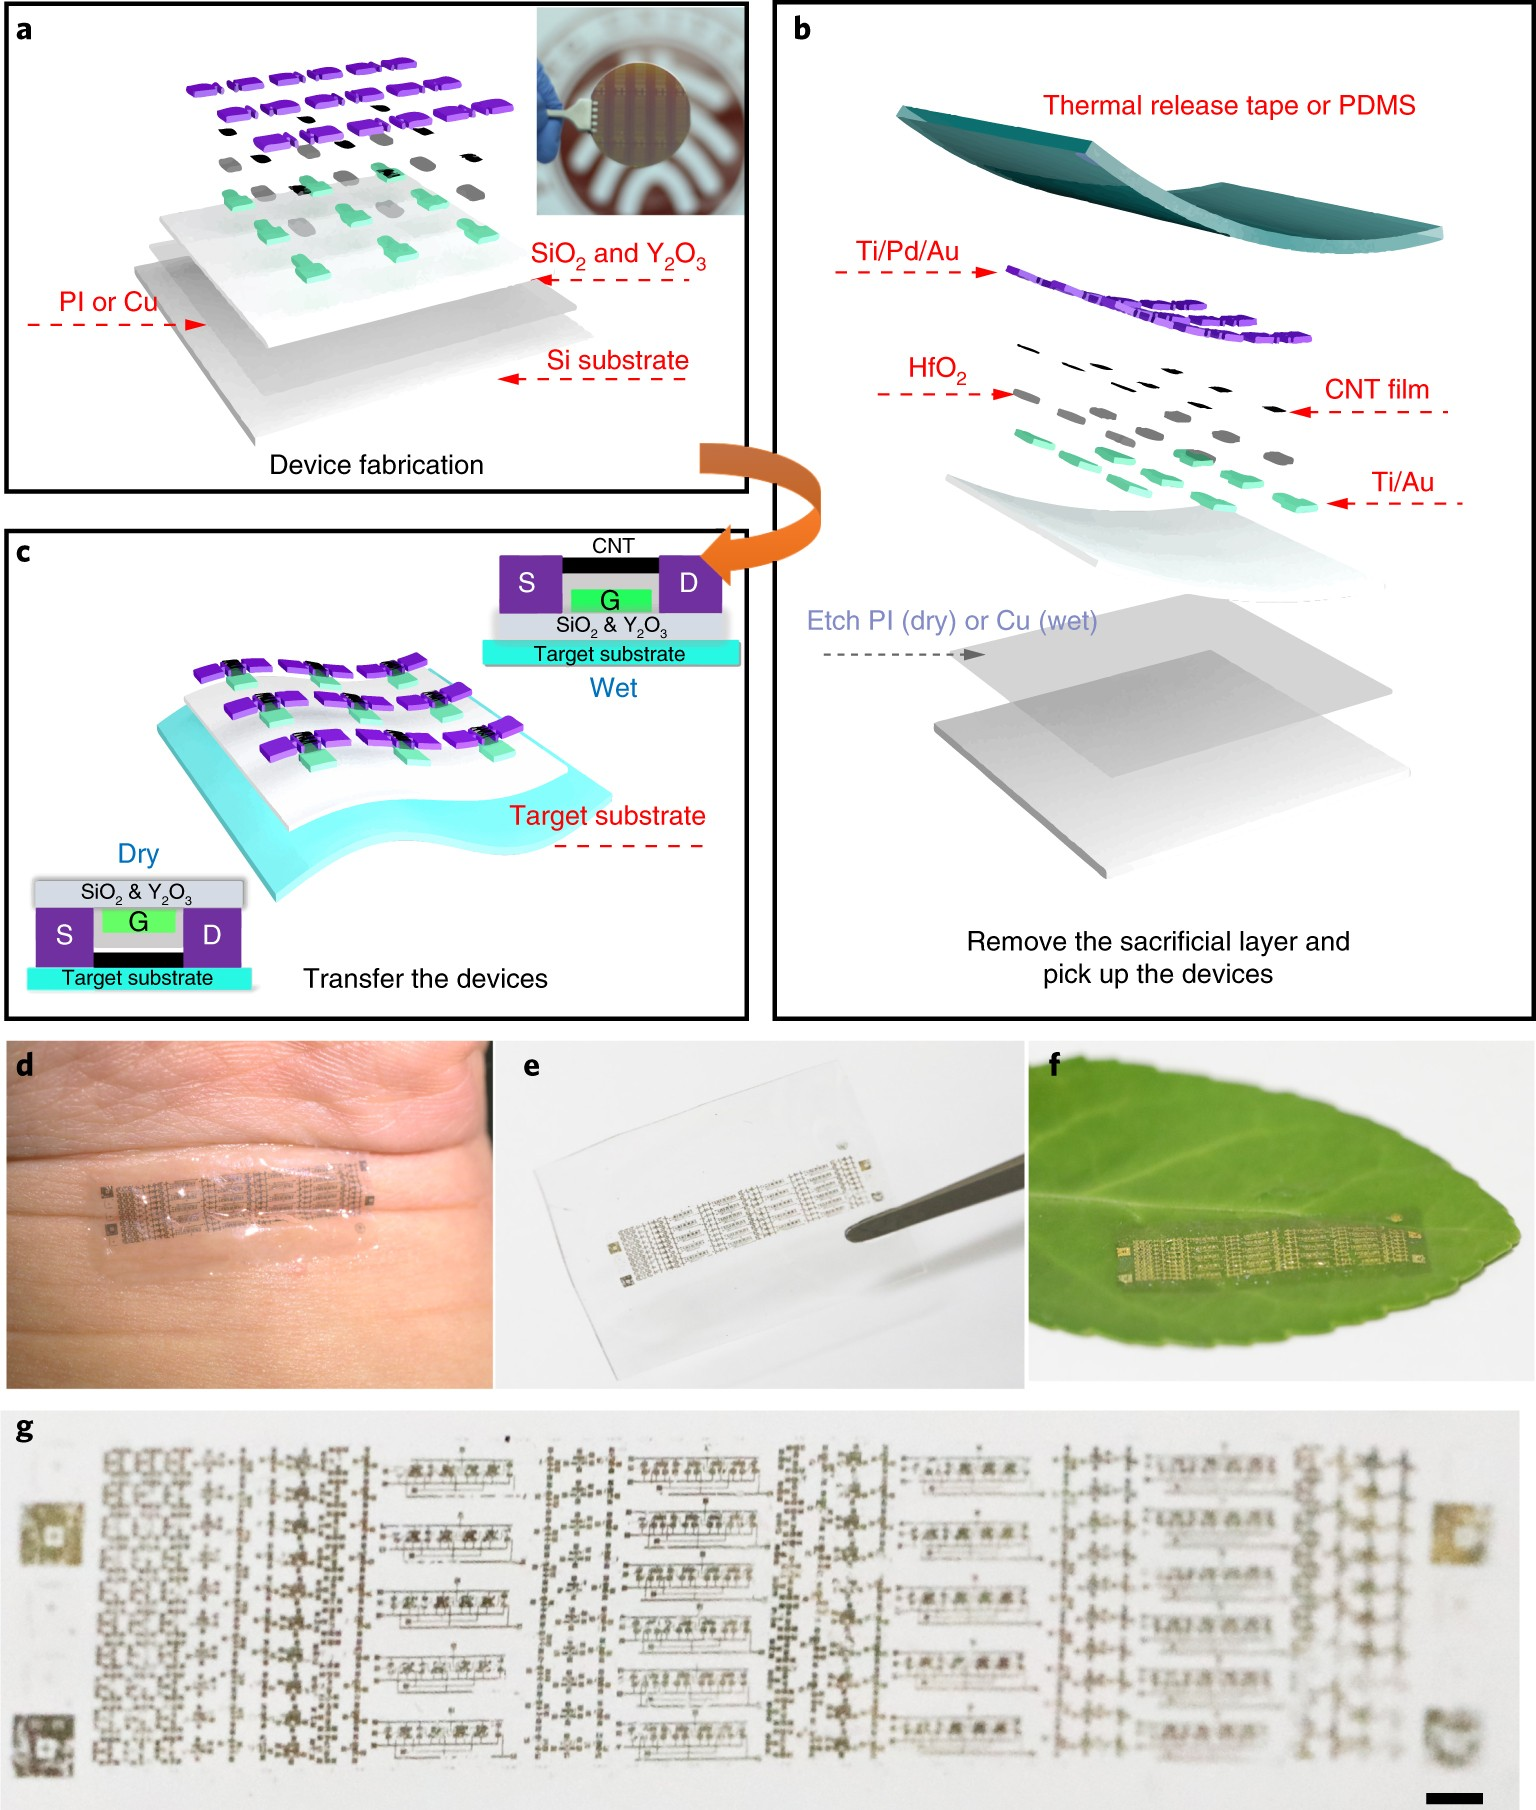 Low Power Carbon Nanotube Based Integrated Circuits That Can Be Mini Logic Probe With Transistor Circuit Transferred To Biological Surfaces Nature Electronics